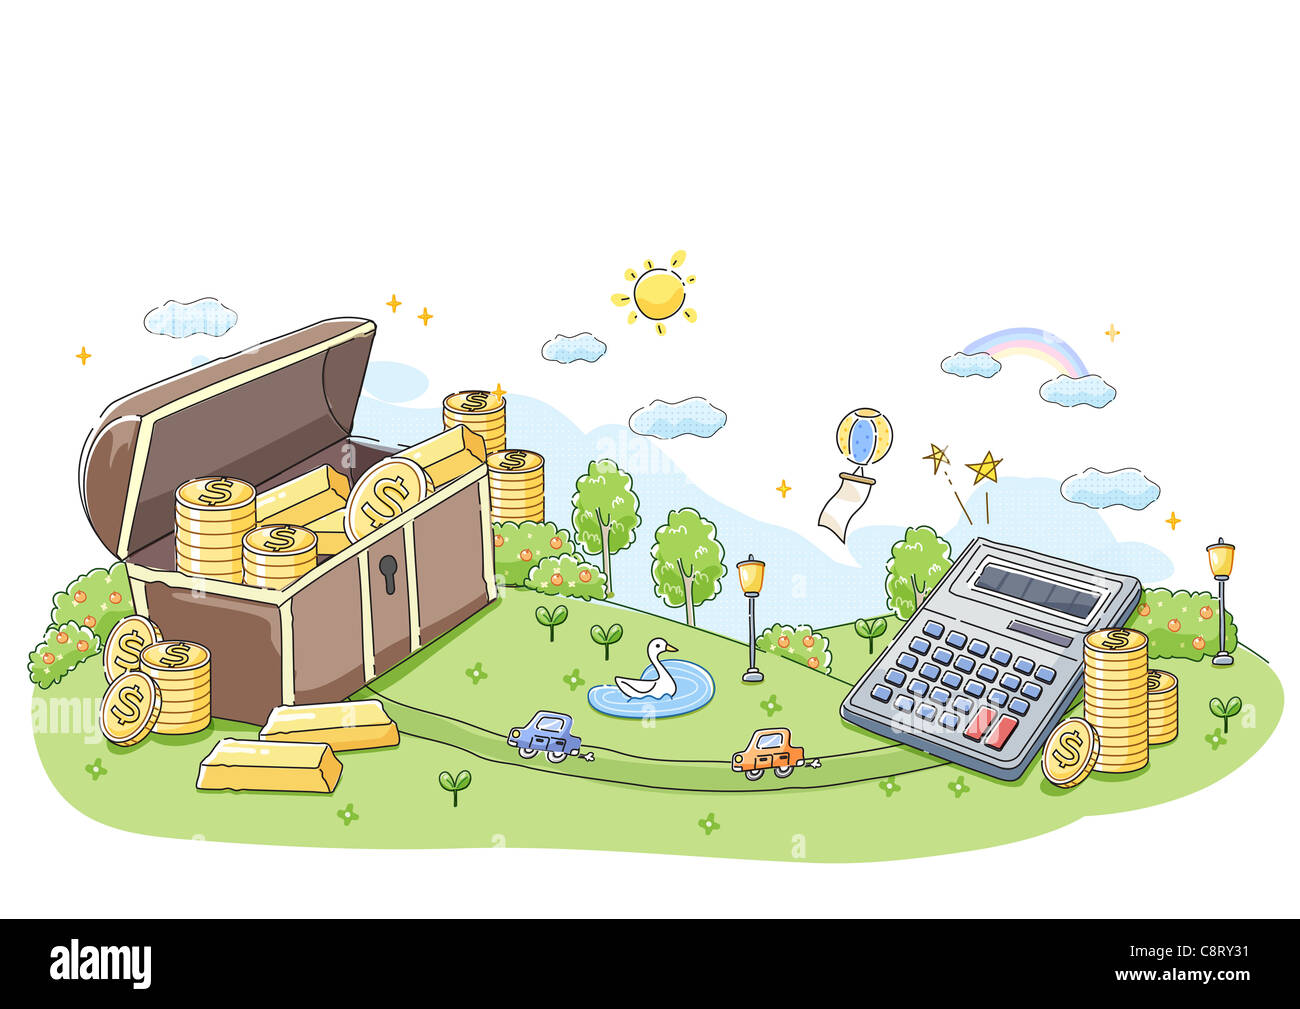 Illustration of gold coins and gold bar with calculator in background - Stock Image